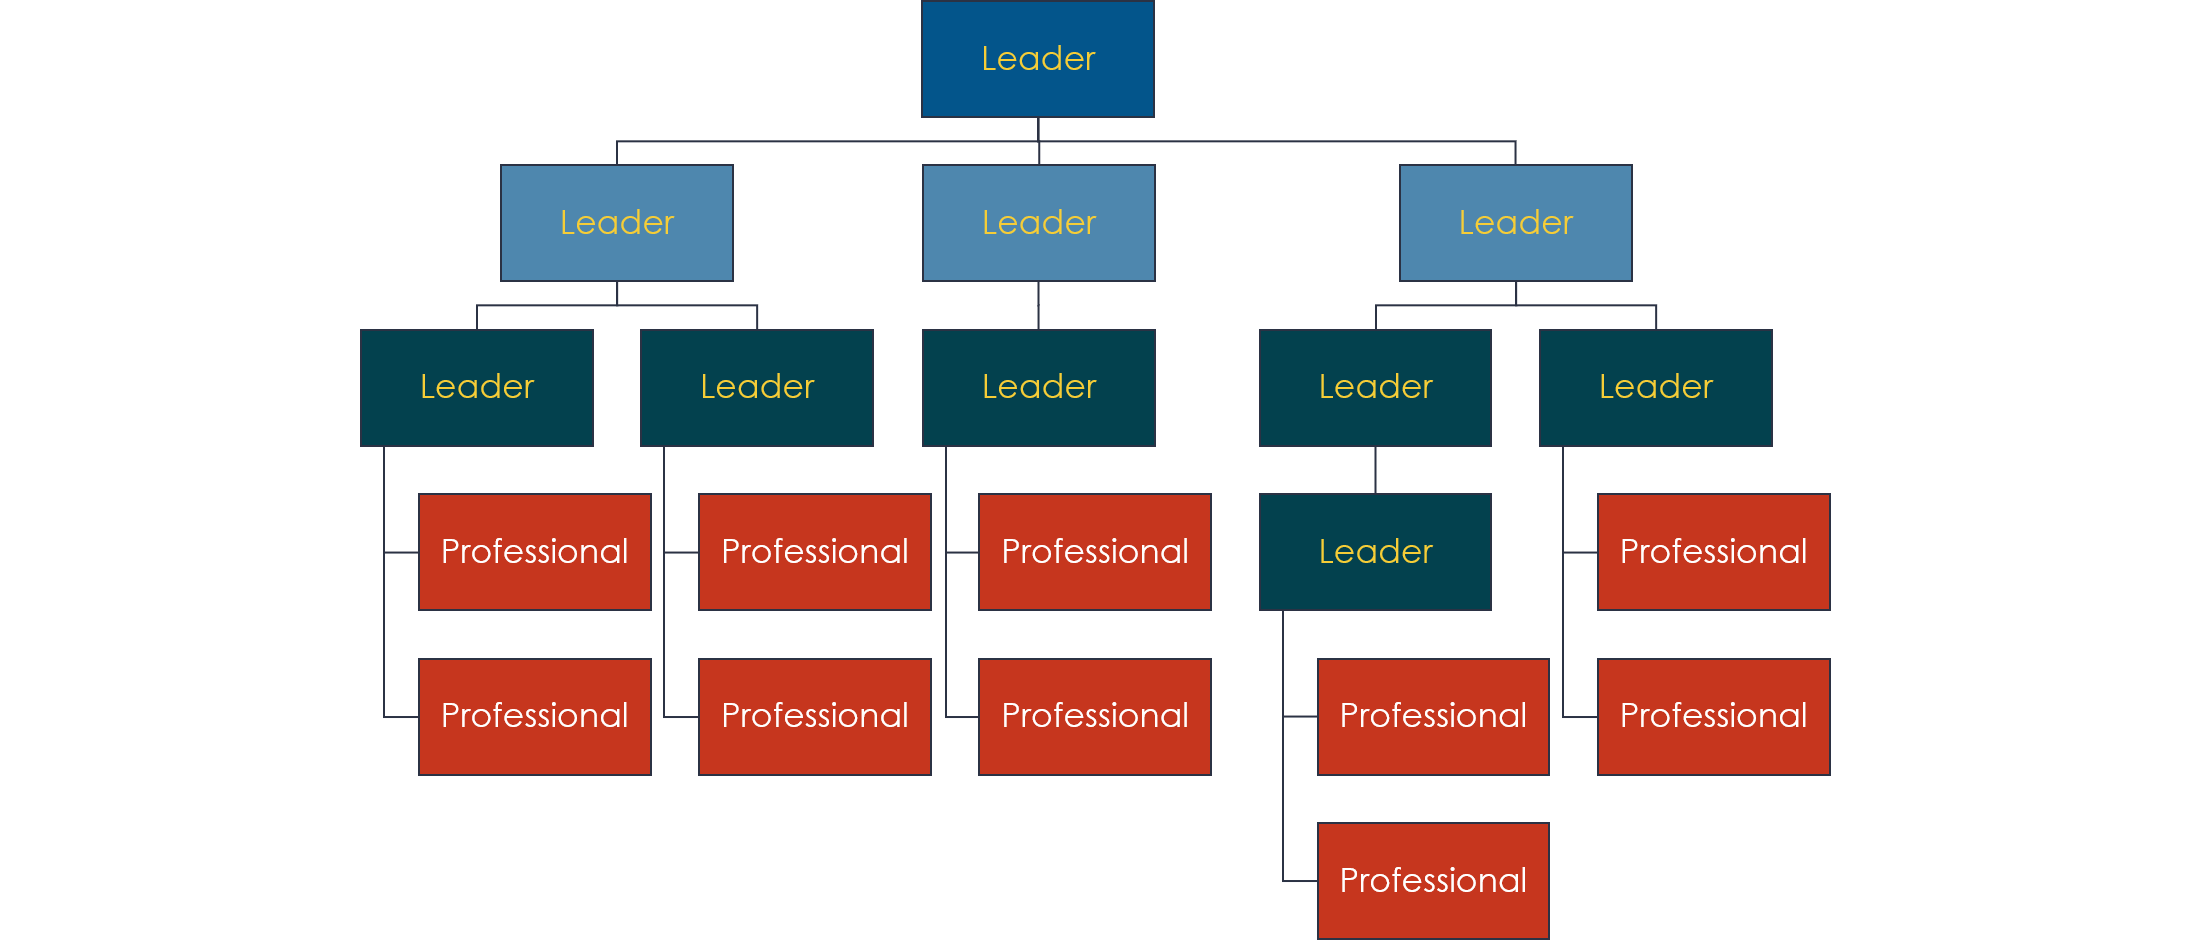 vertical org chart showing leaders above professionals